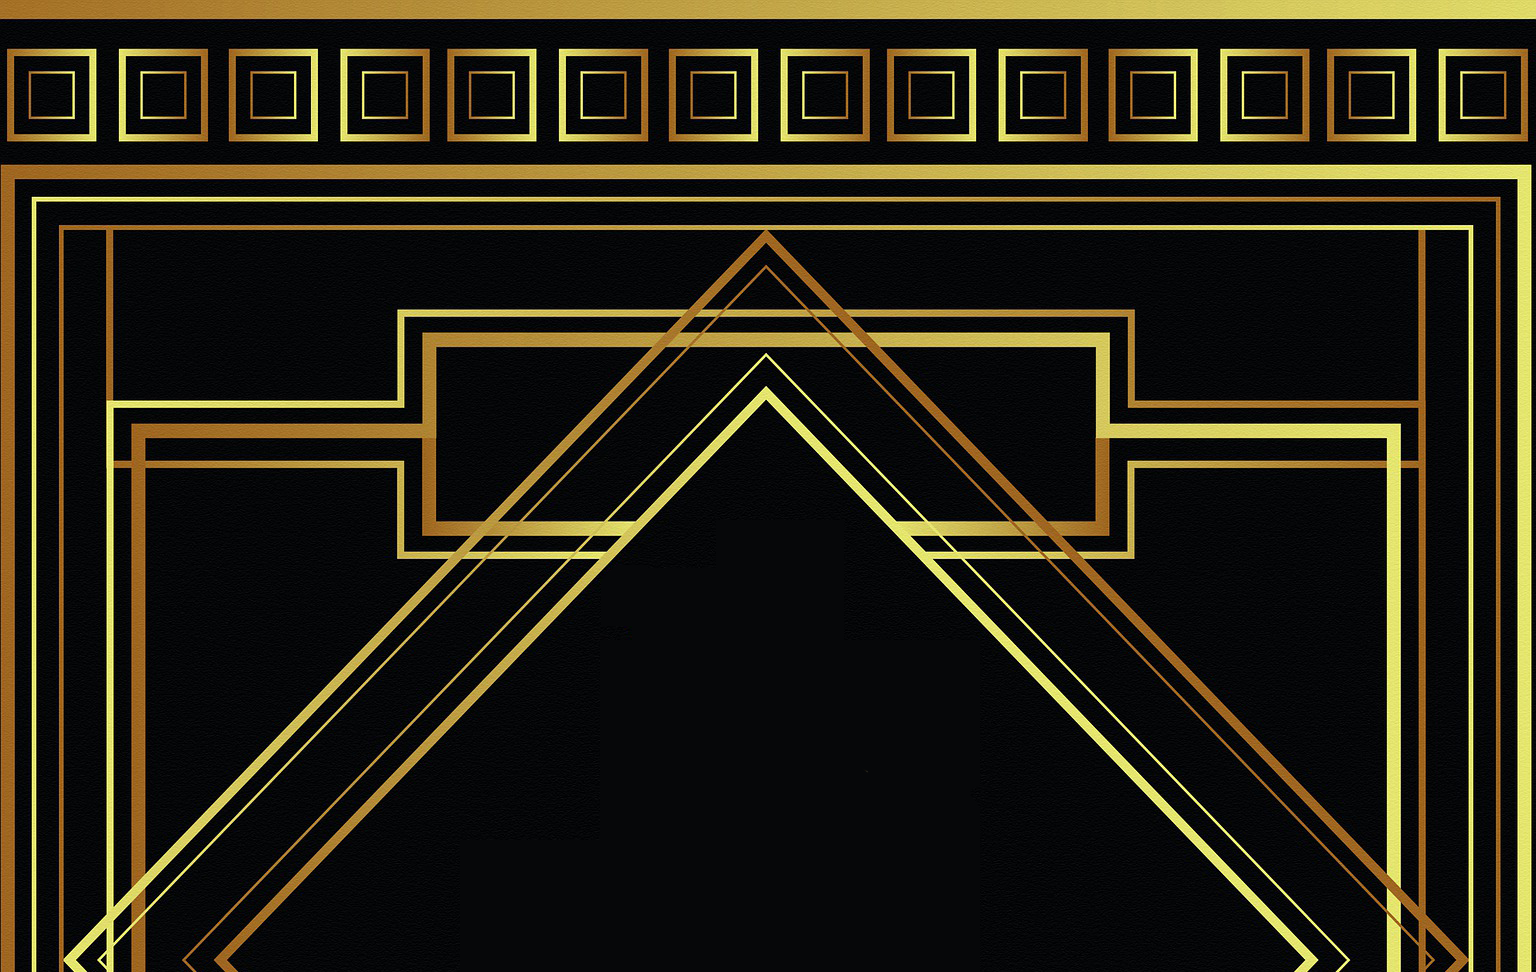 ART DECO CROPPED IN HALF.png